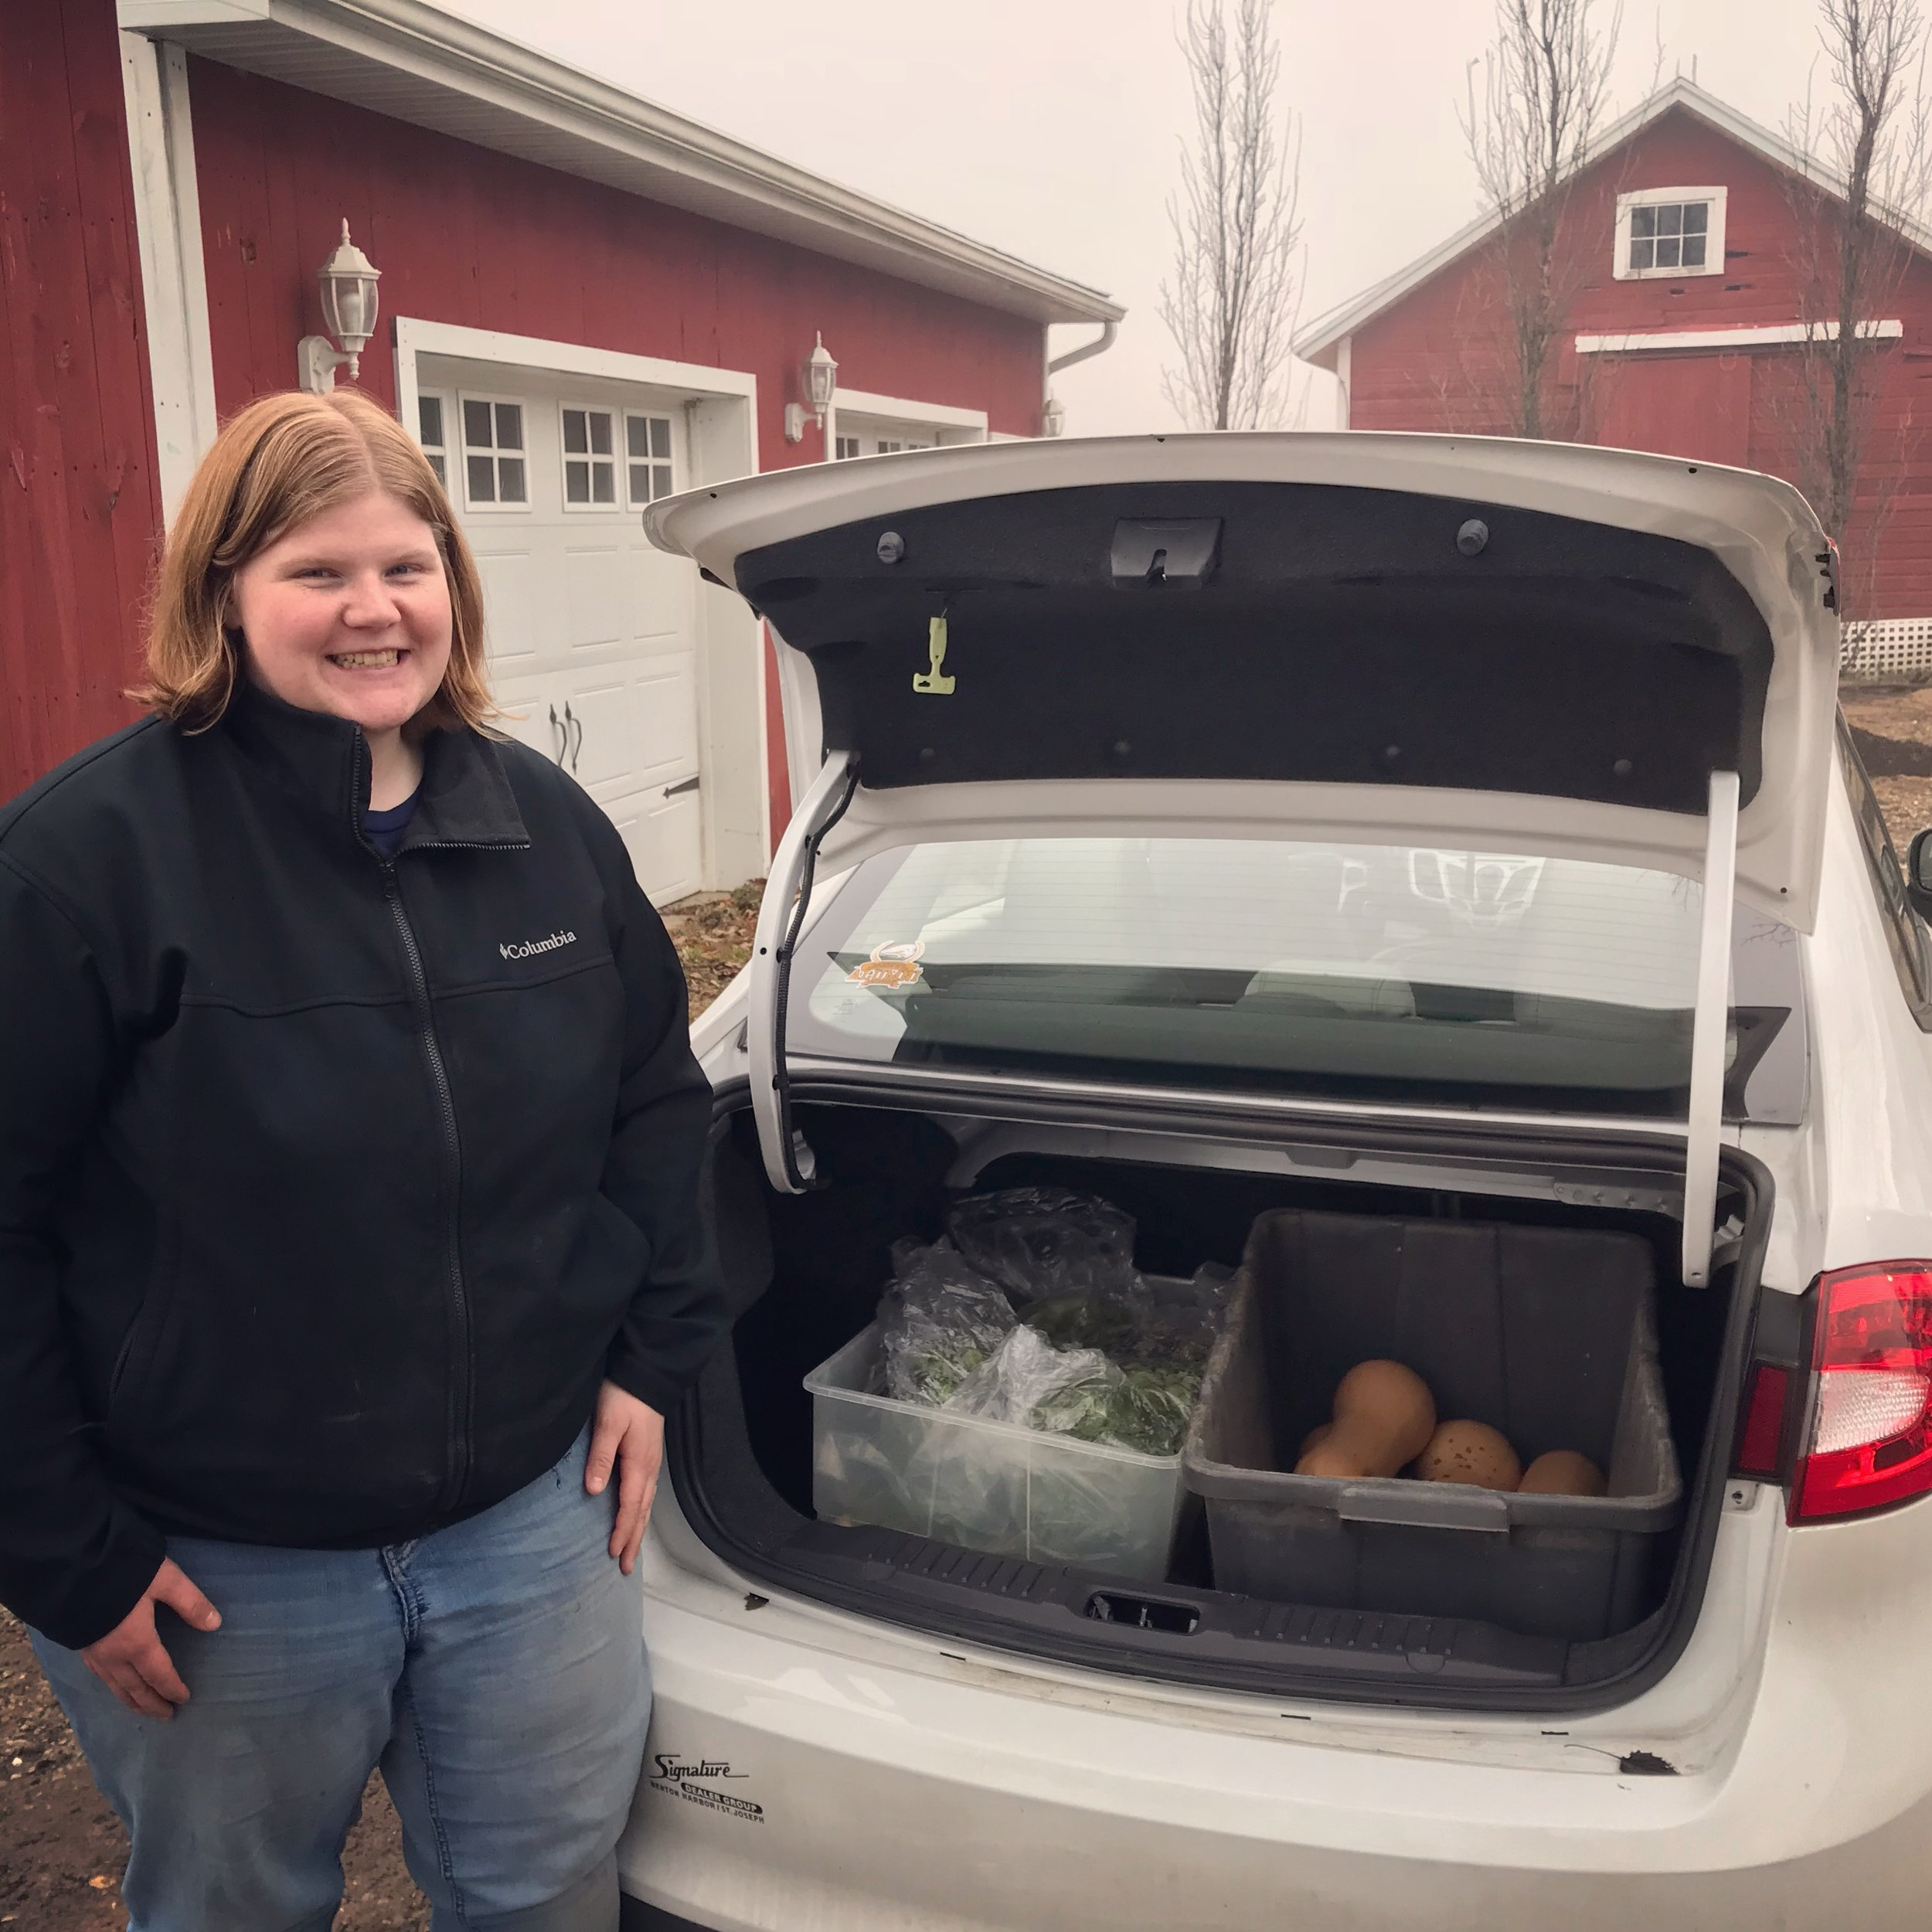 Mary from Harbor Country Mission picking up some early December produce